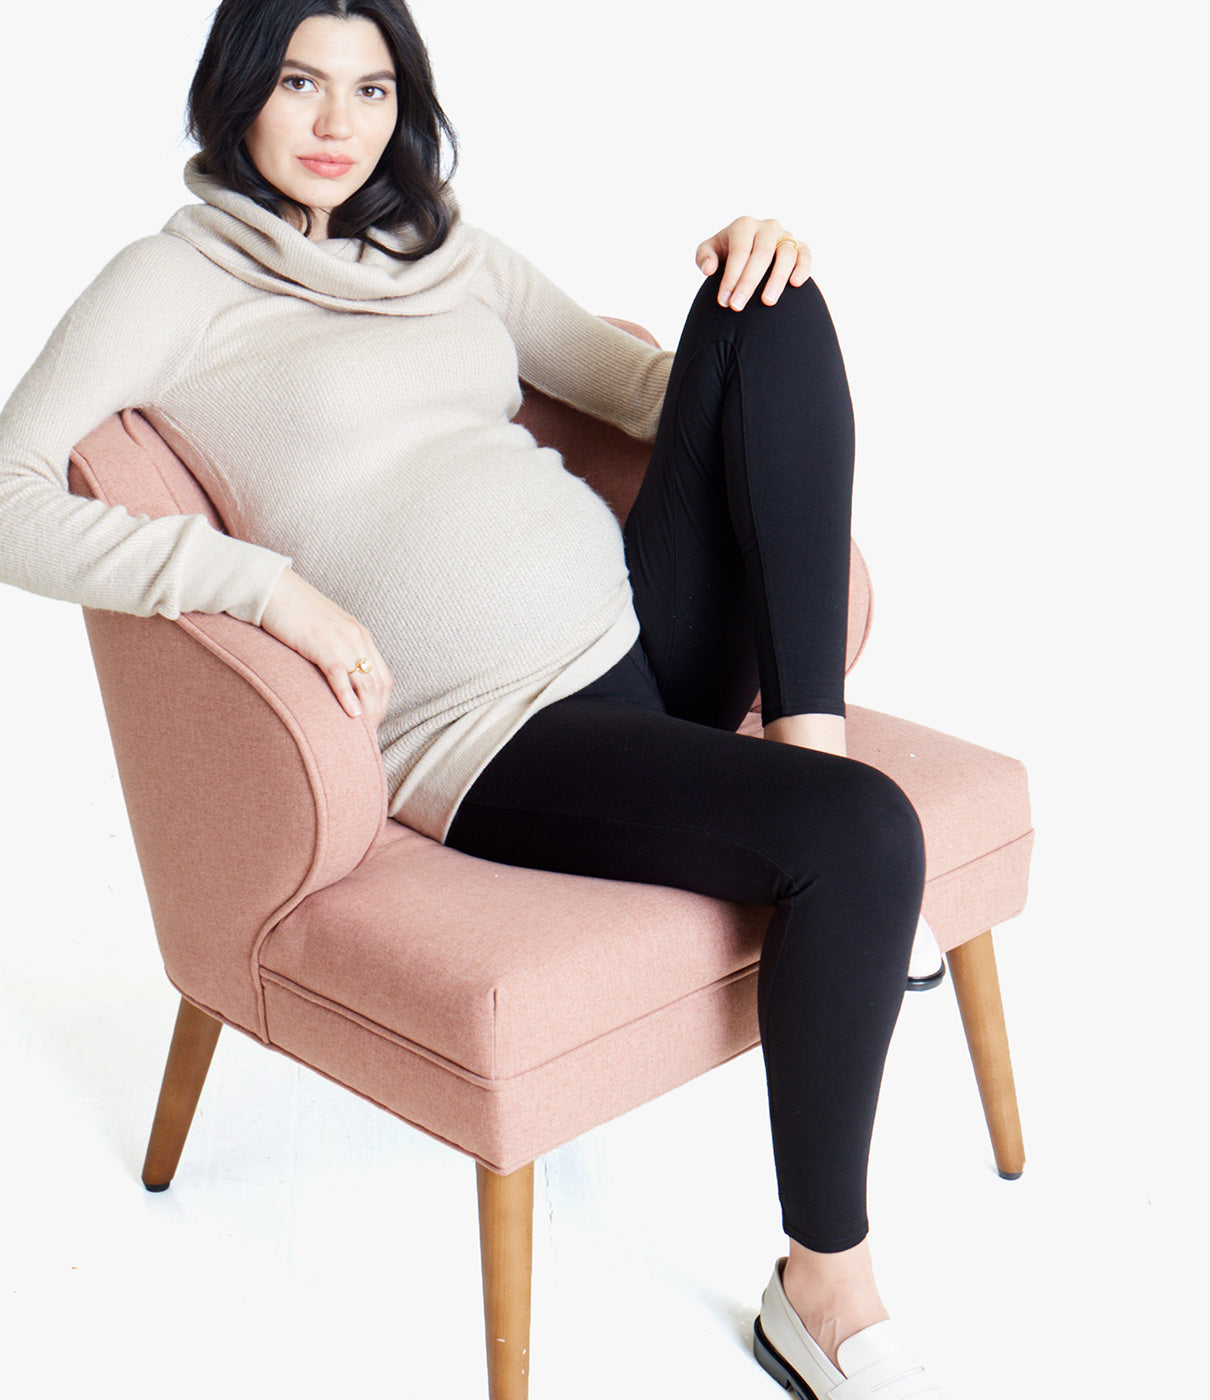 CRAZY COMFORTABLEStretchy, figure-flattering ponte knit with an ultra-comfortable fit is your go-to pant throughout pregnancy and after.